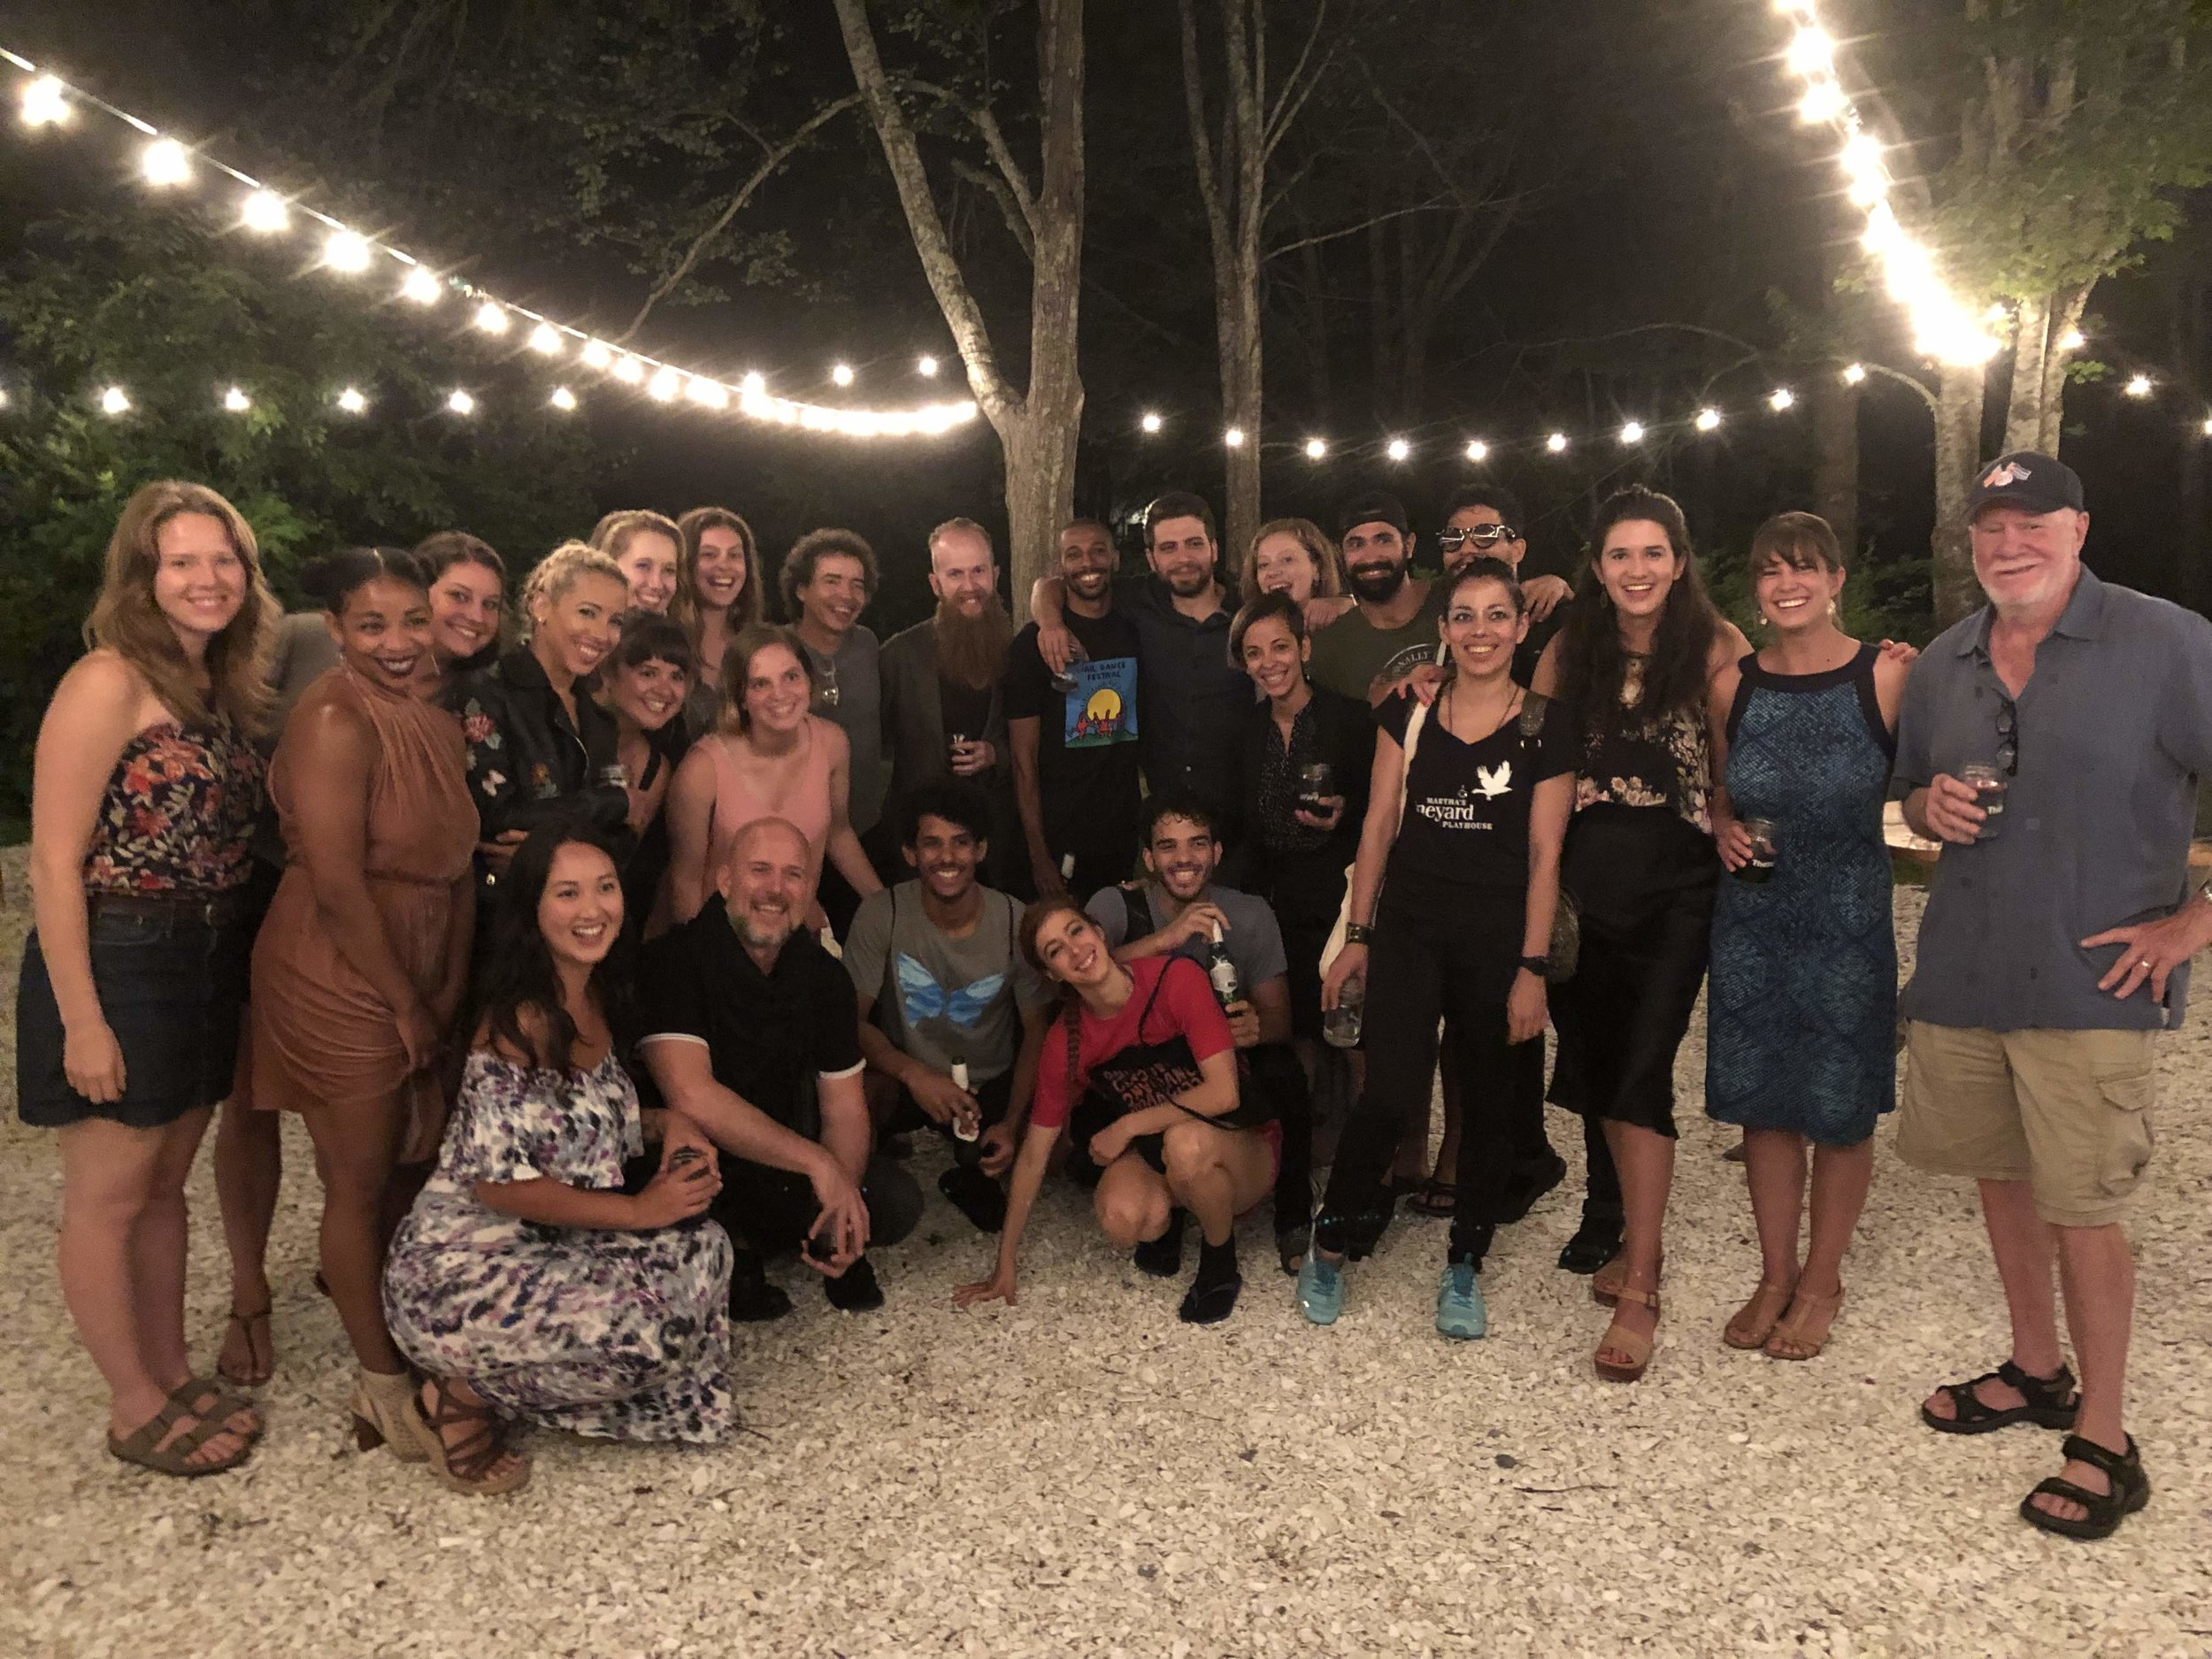 Malpaso Dance Company, Yard Staff and Interns, and Yard Board Members after Malpaso's August 3rd performance at The Yard. Photo by Amy Brenneman